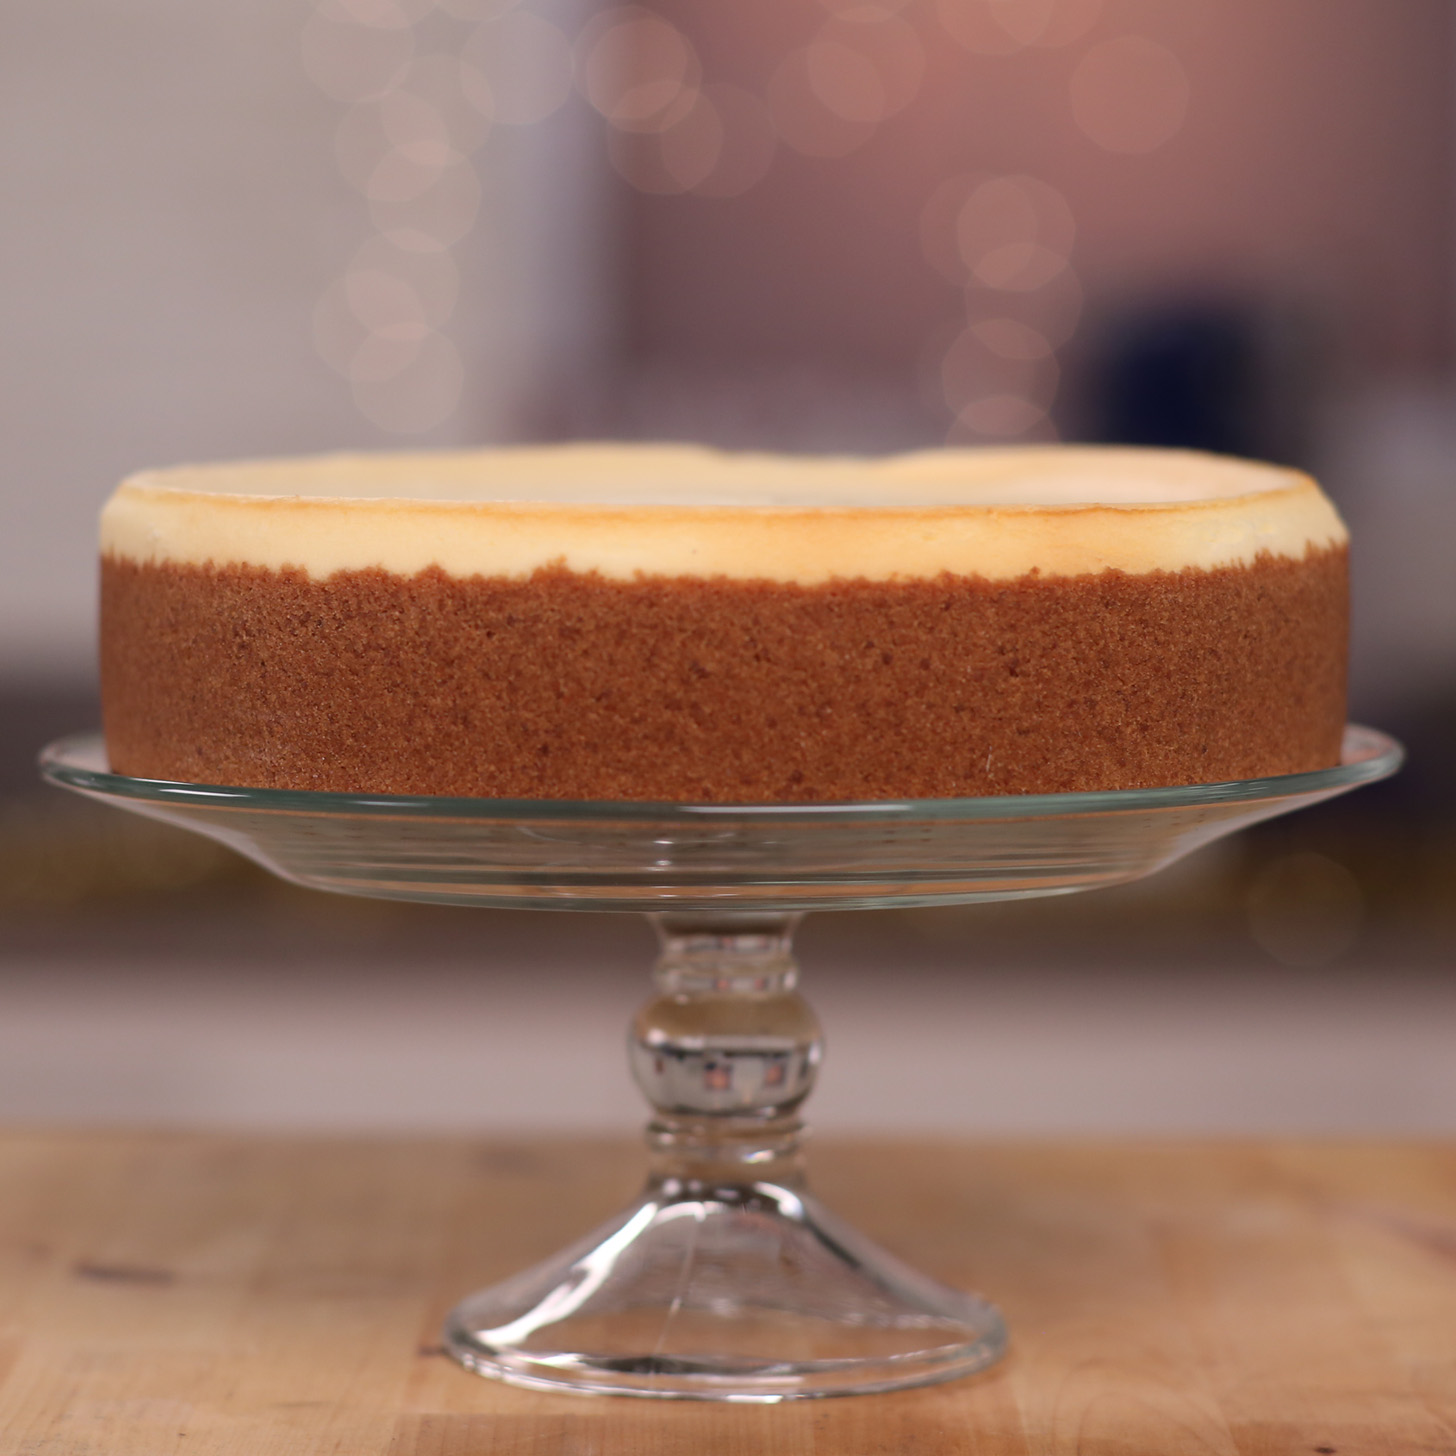 new york cheesecake recipe video popsugar food. Black Bedroom Furniture Sets. Home Design Ideas